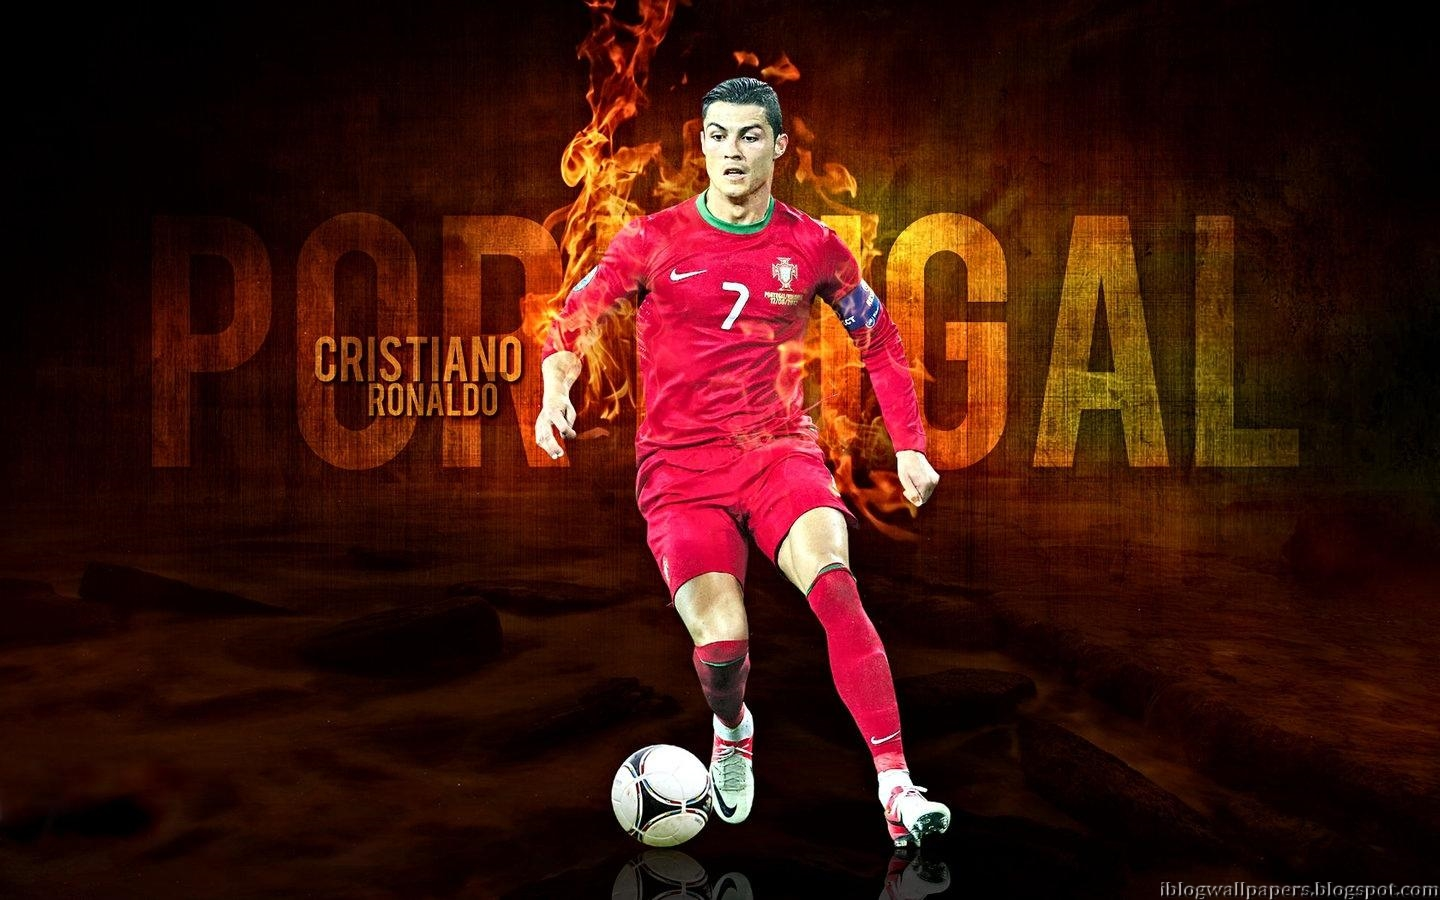 Cristiano ronaldo portugal wallpaper hd free download - C ronaldo wallpaper portugal ...